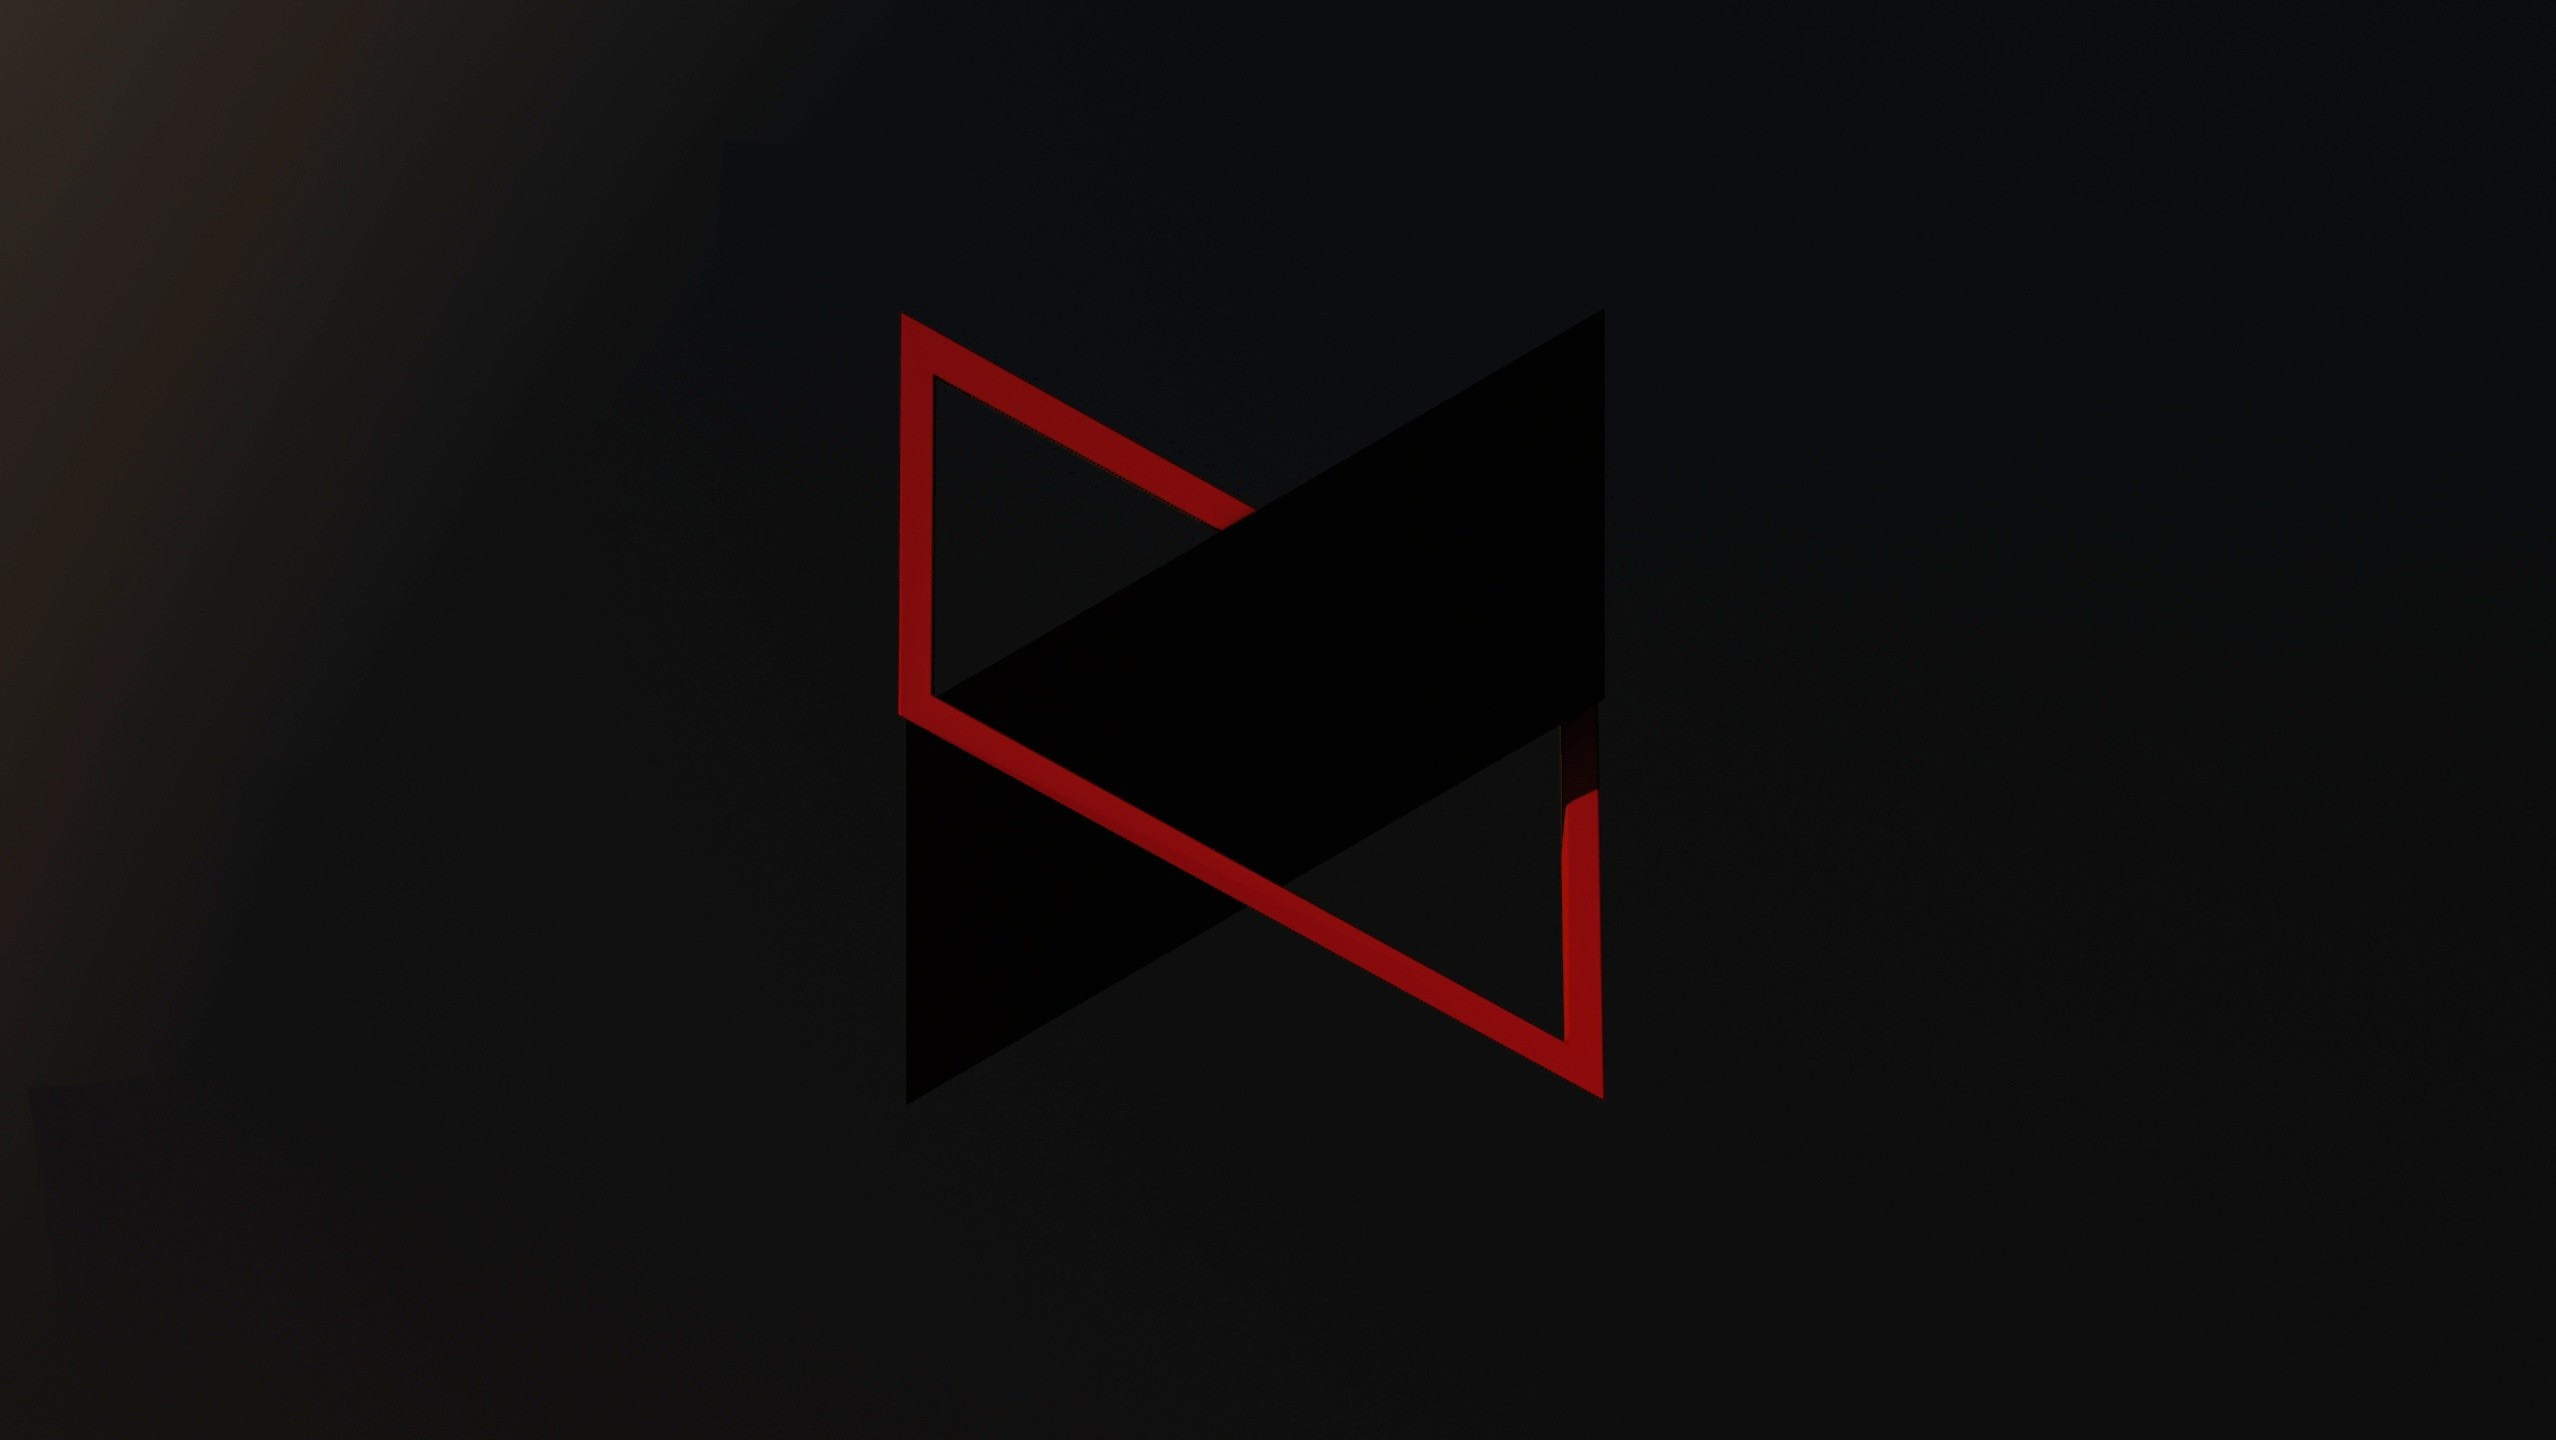 mkbhd wallpaper images (13)